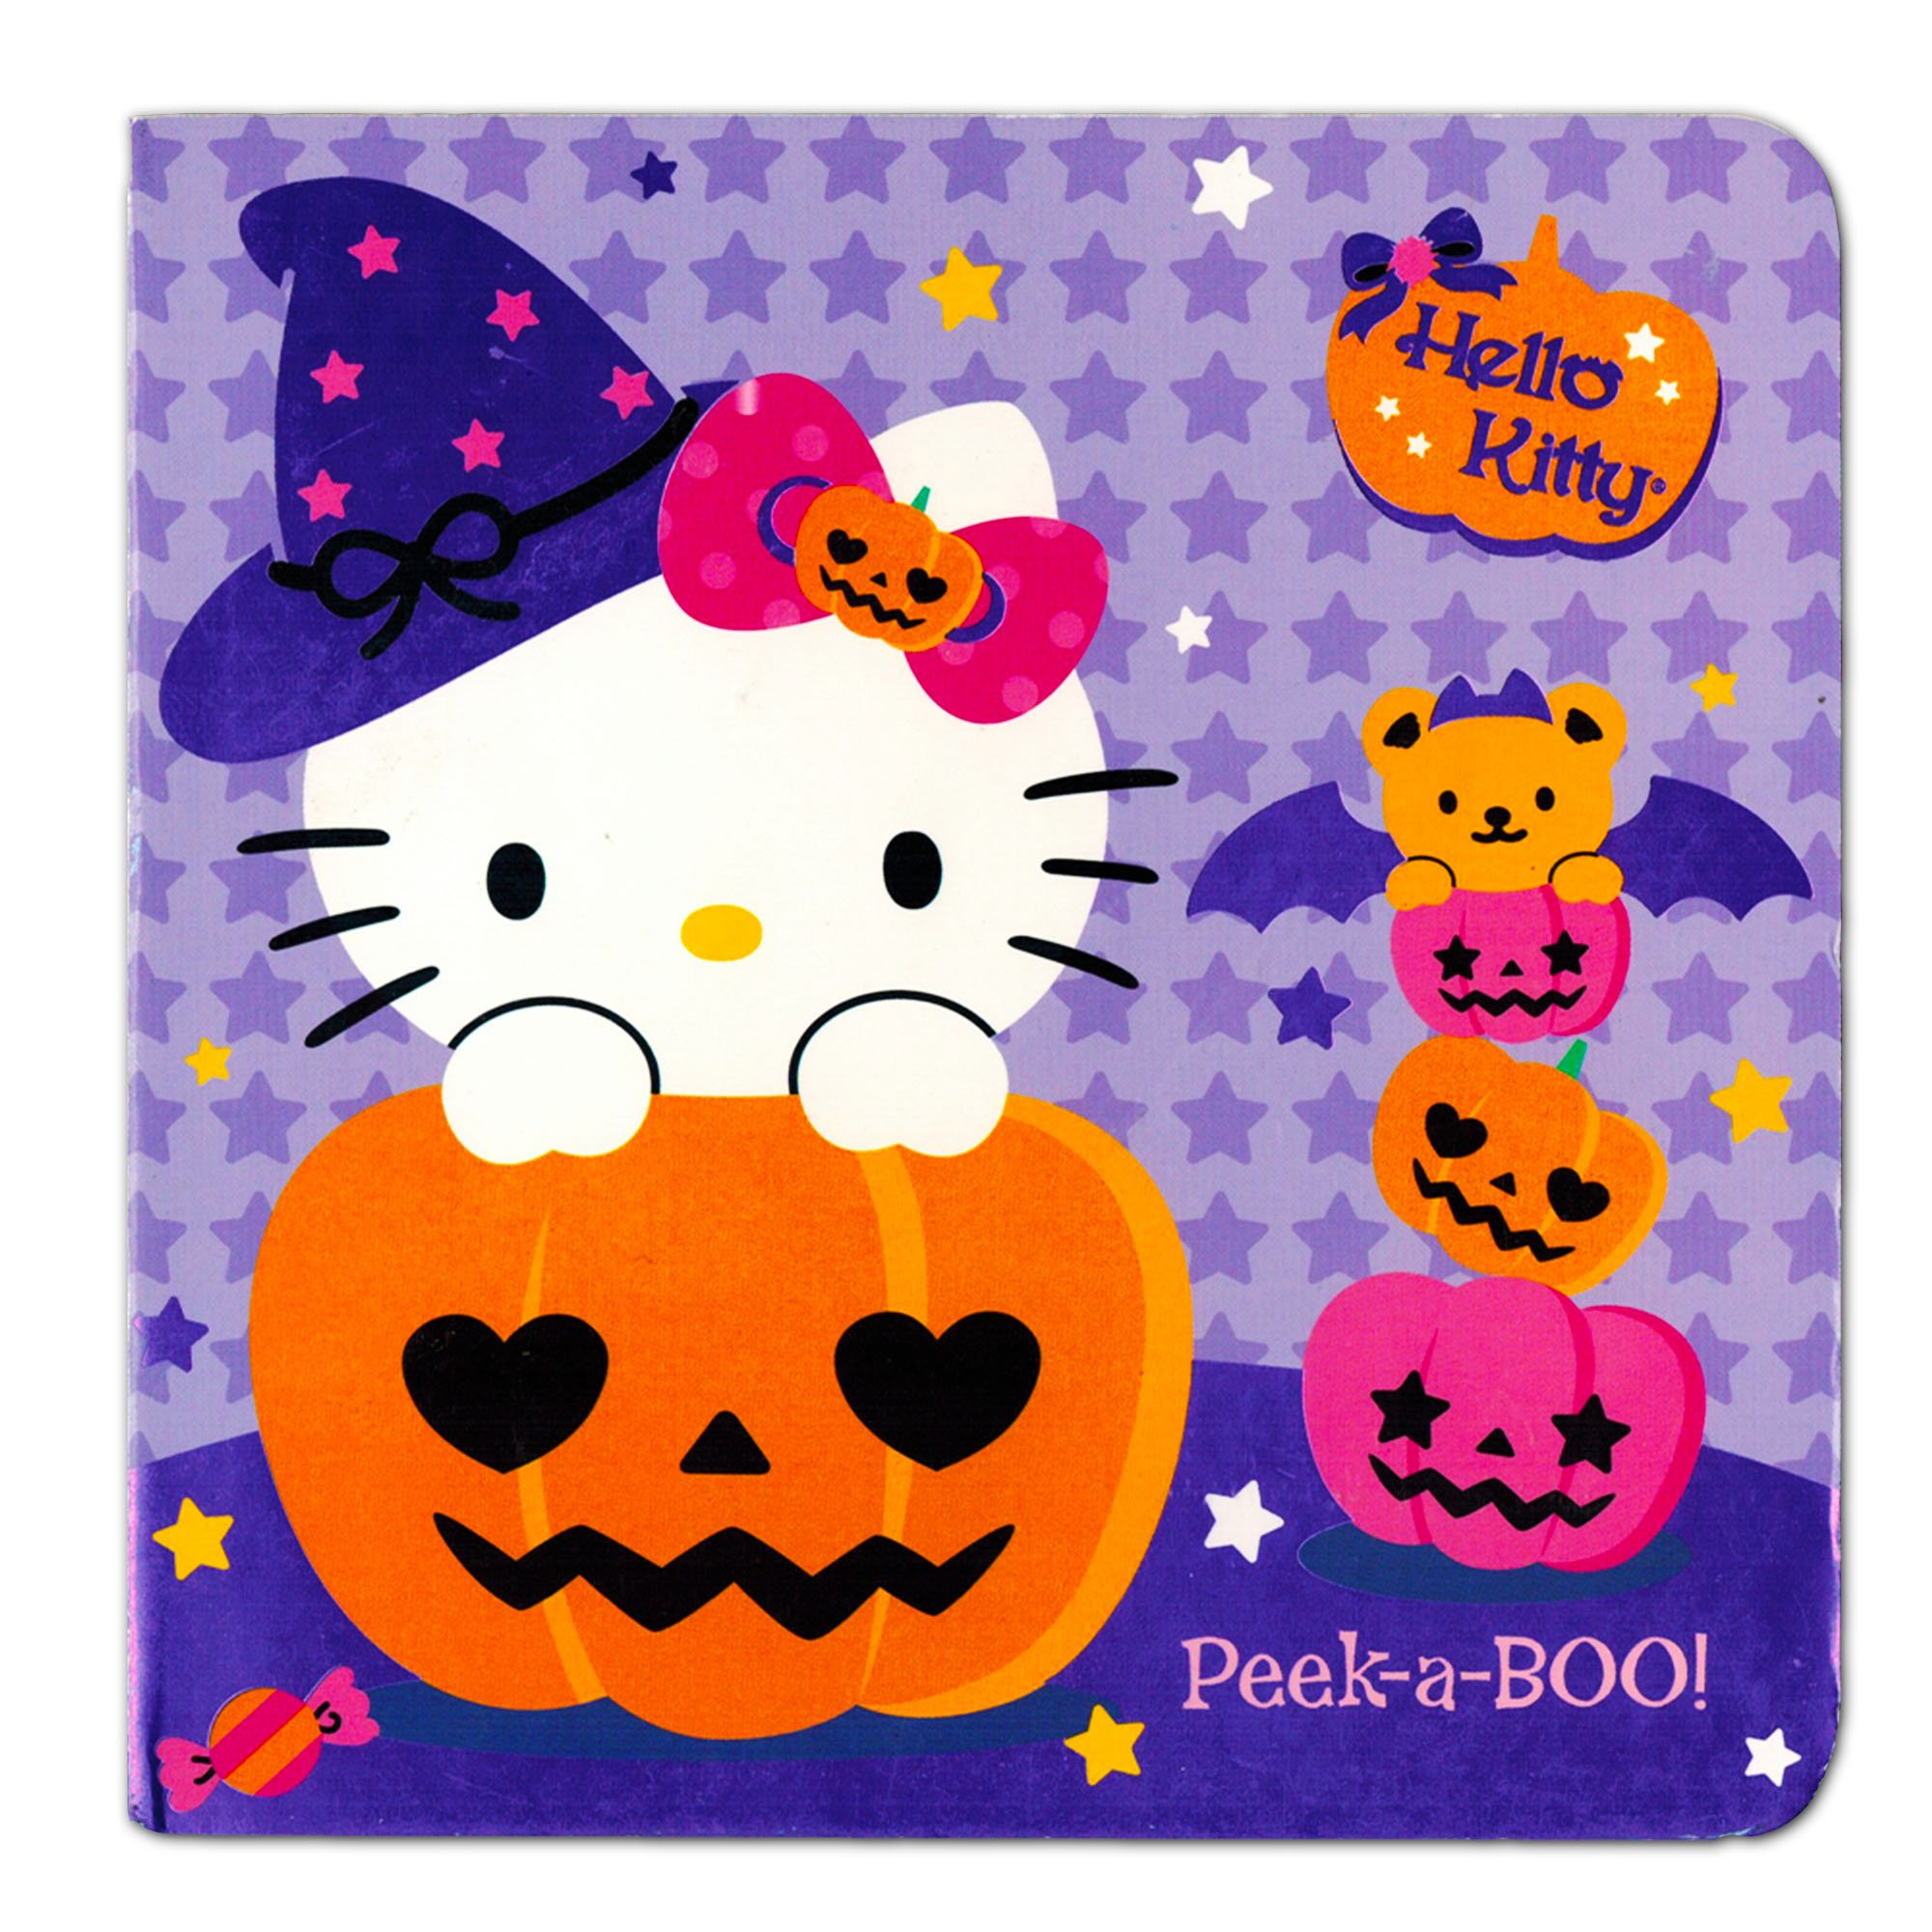 "Hello Kitty Halloween Board Book For Kids Toddlers Girls (Hello Kitty ""Peek-a-Boo!"")"